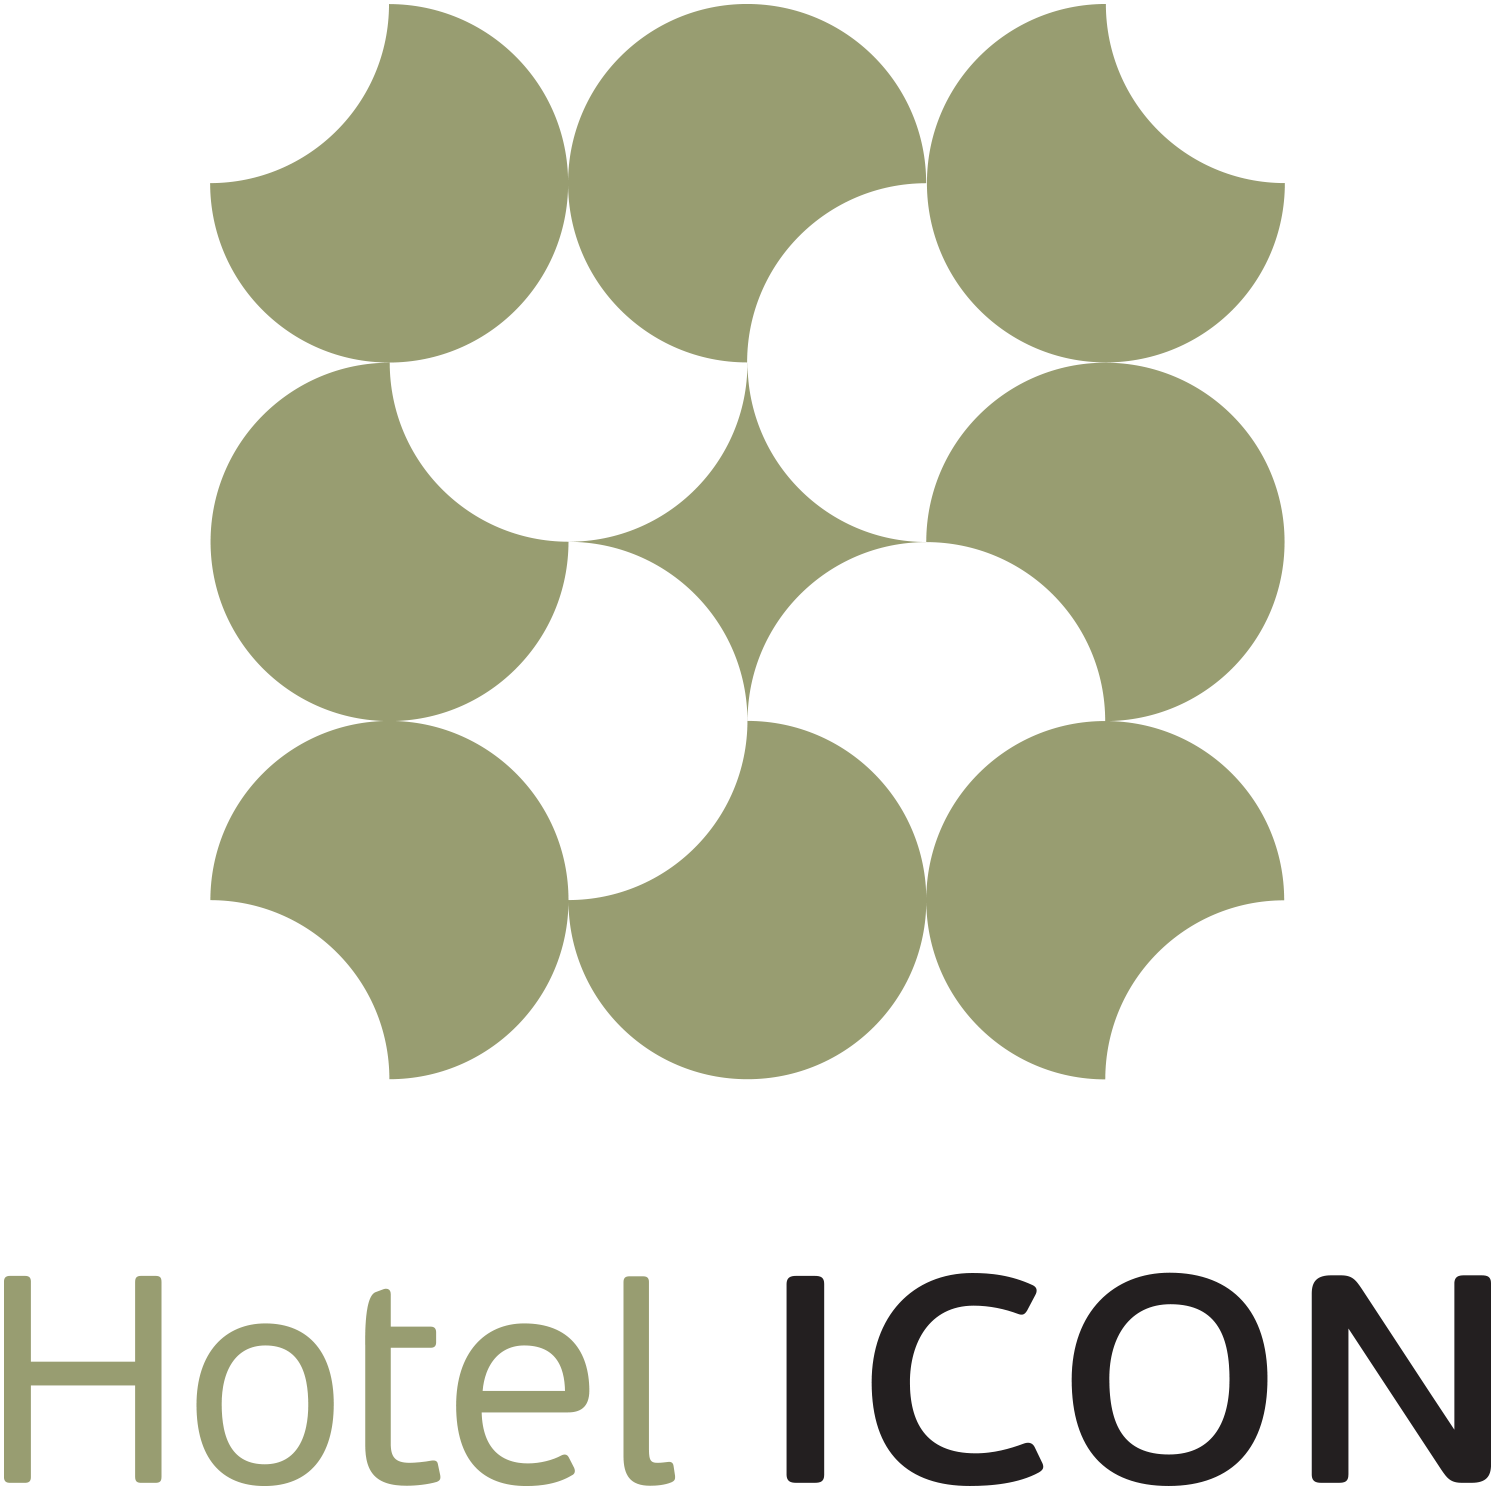 HotelICON_logo_big